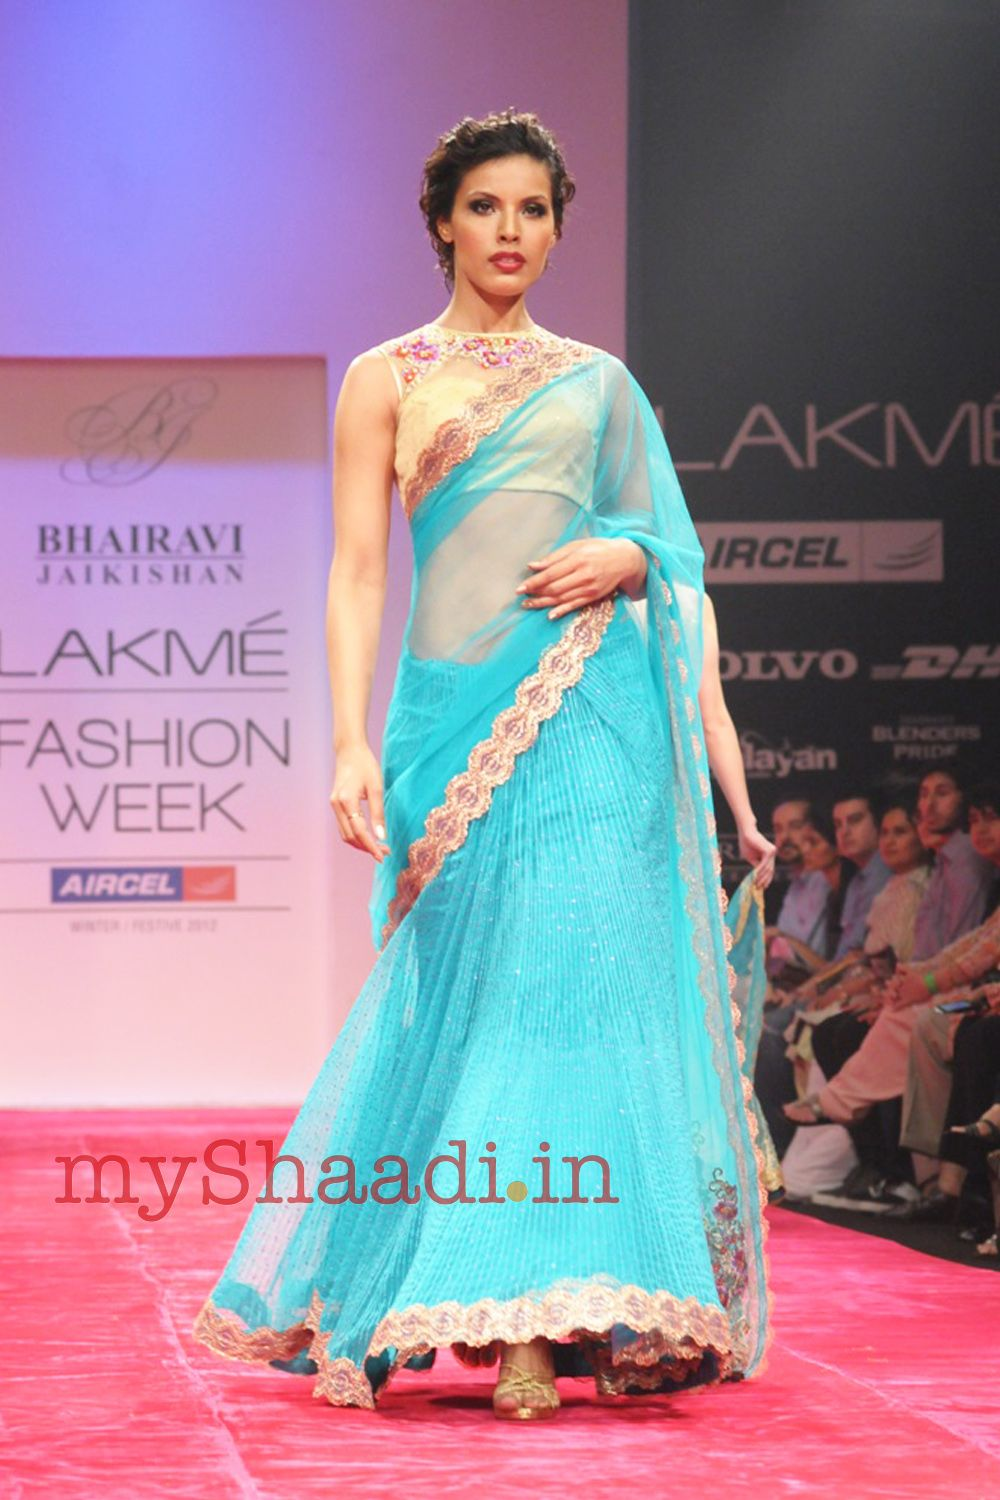 myShaadi.in > Indian Bridal Wear by Bhairavi Jaikishan | Asian ...